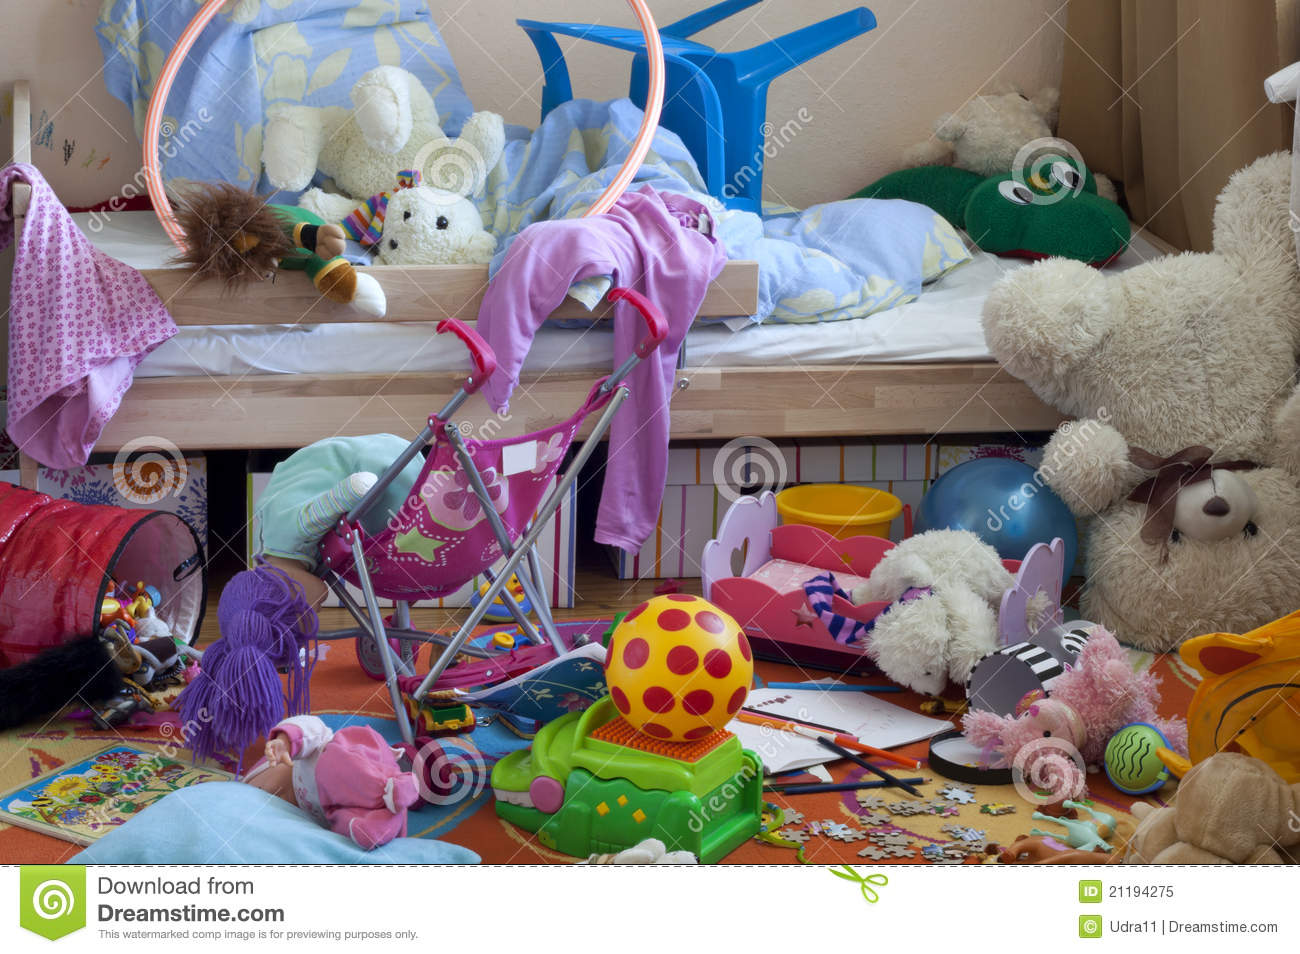 Messy room stock image. Image of kids, doll, home, muss ...